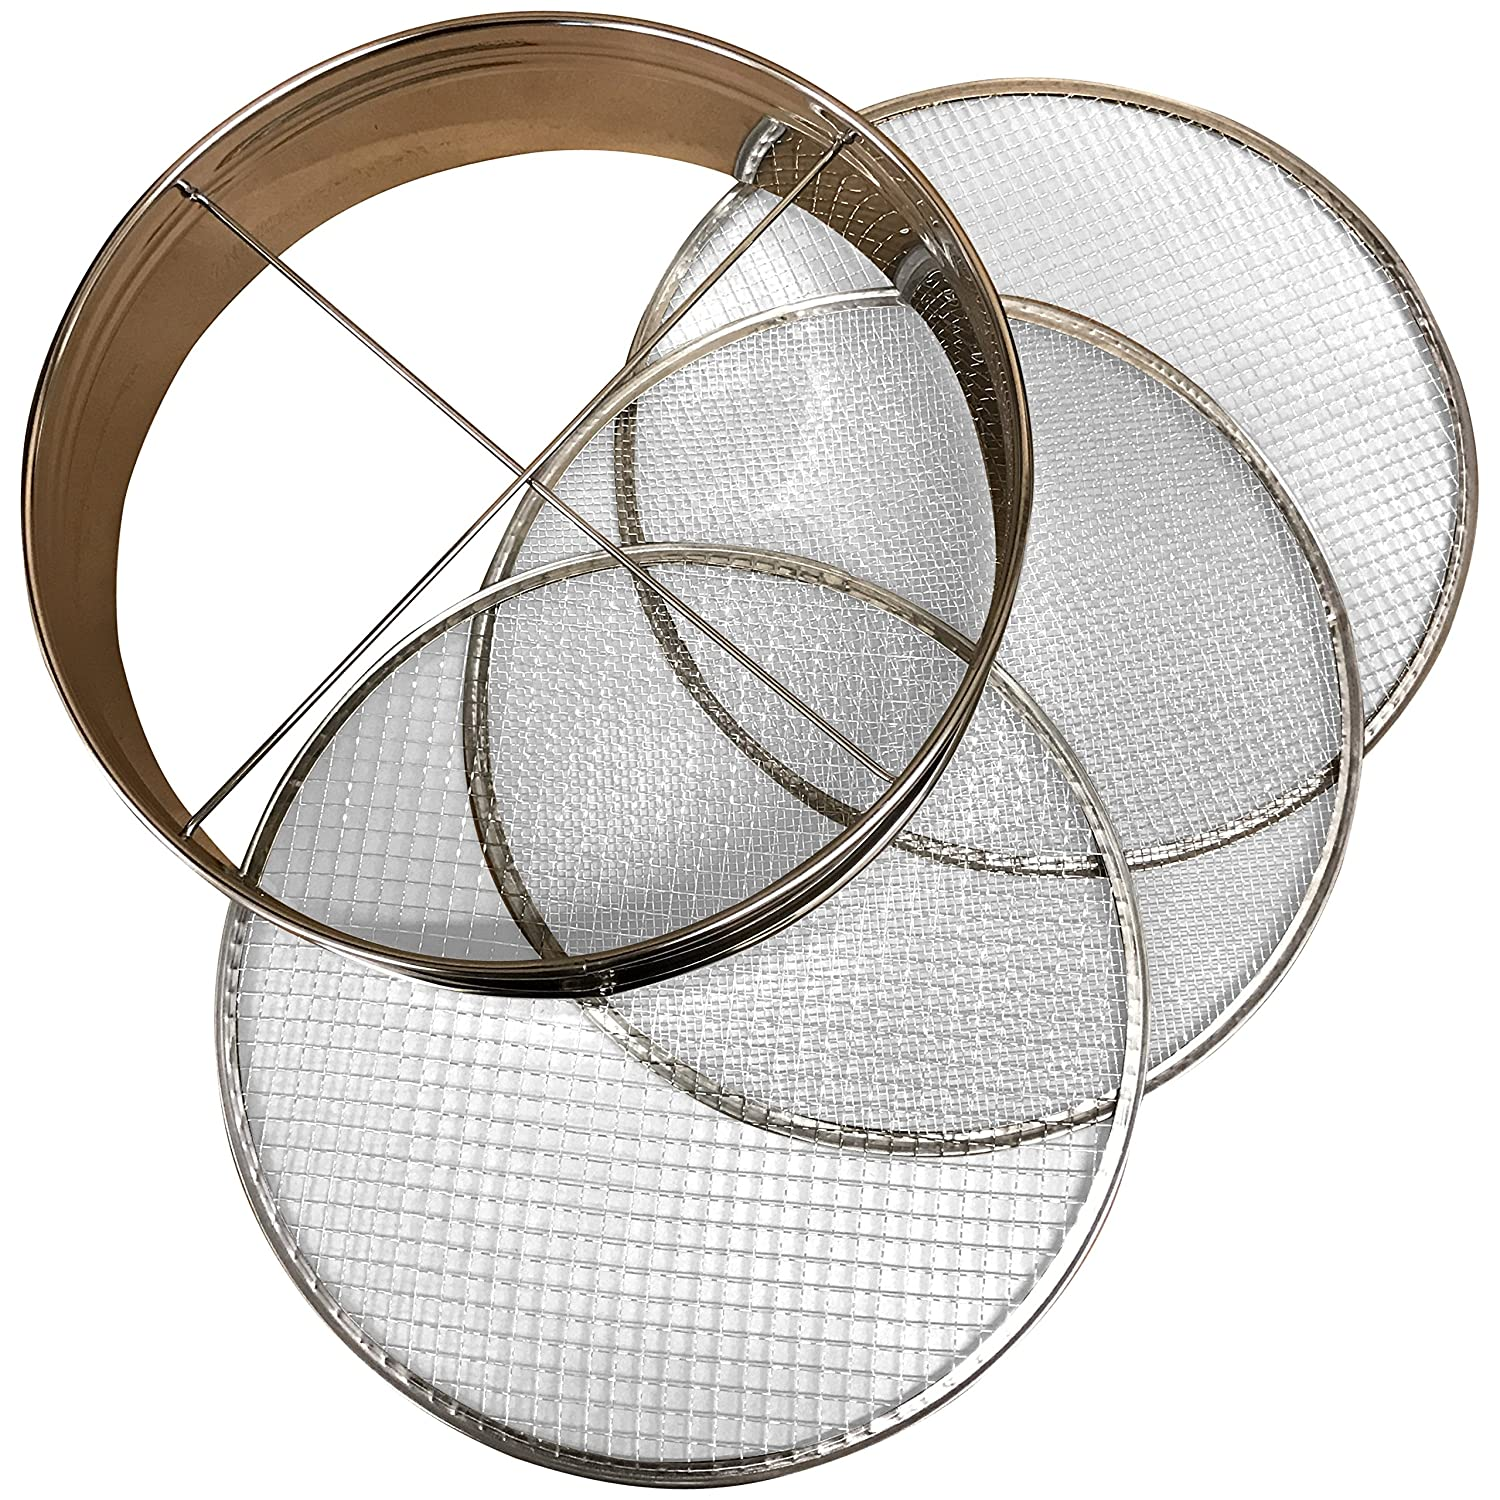 4pc Soil Sieve Set 12 diameter Stainless Steel Frame Three Interchangeable Sieves With Varying Mesh Sizes Grade Mix Soil Filter Large Debris Replacement Screens Available Great for Bonsai